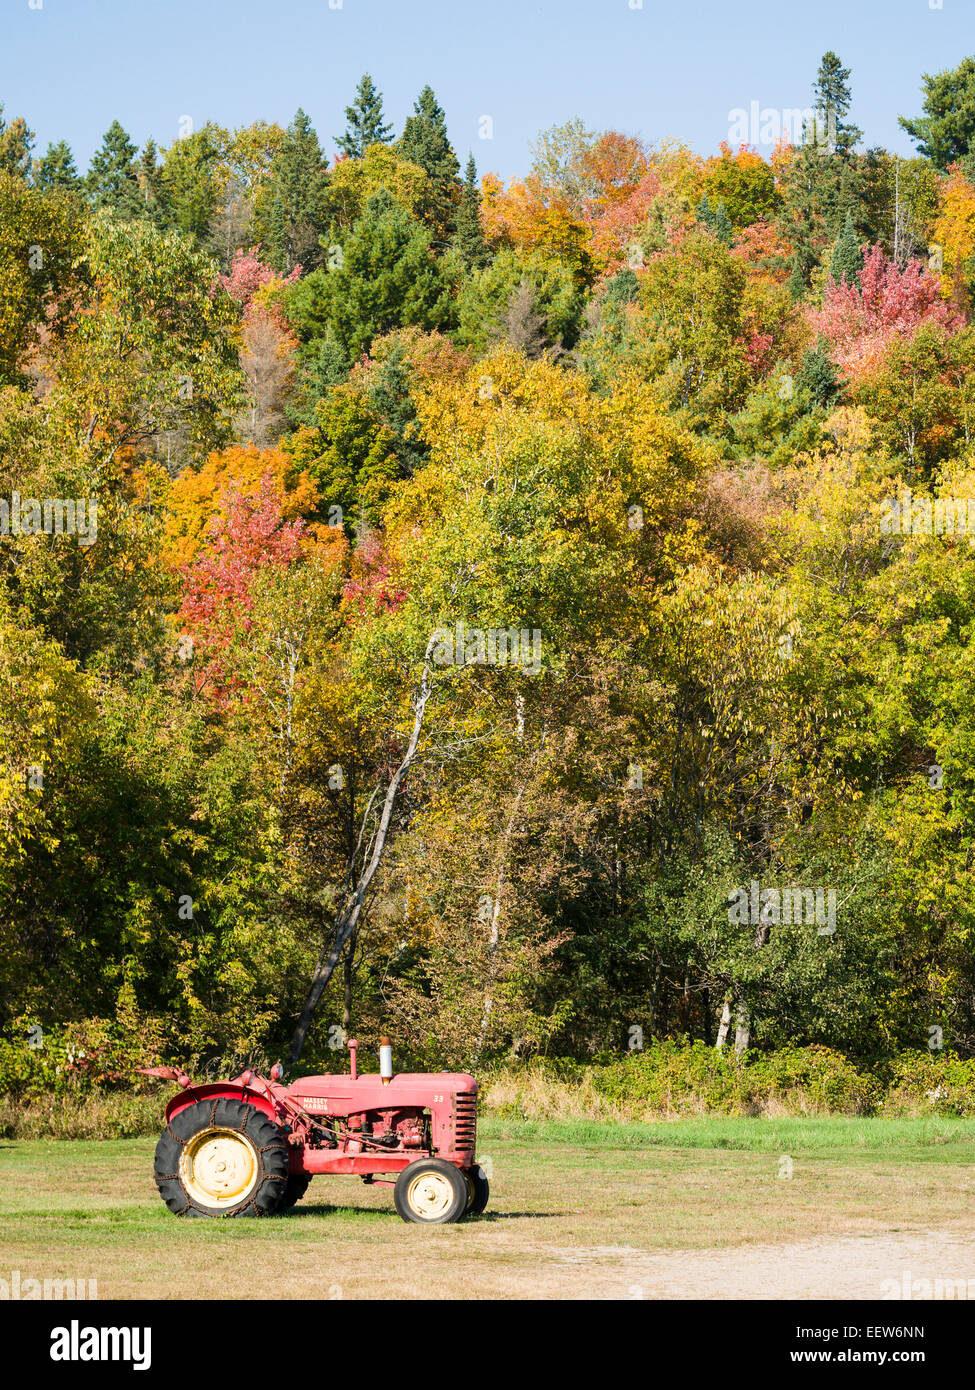 Old Massy Harris Tractor on a Autumn Day. An old red tractor below a colourful slope of fall colours. Stock Photo